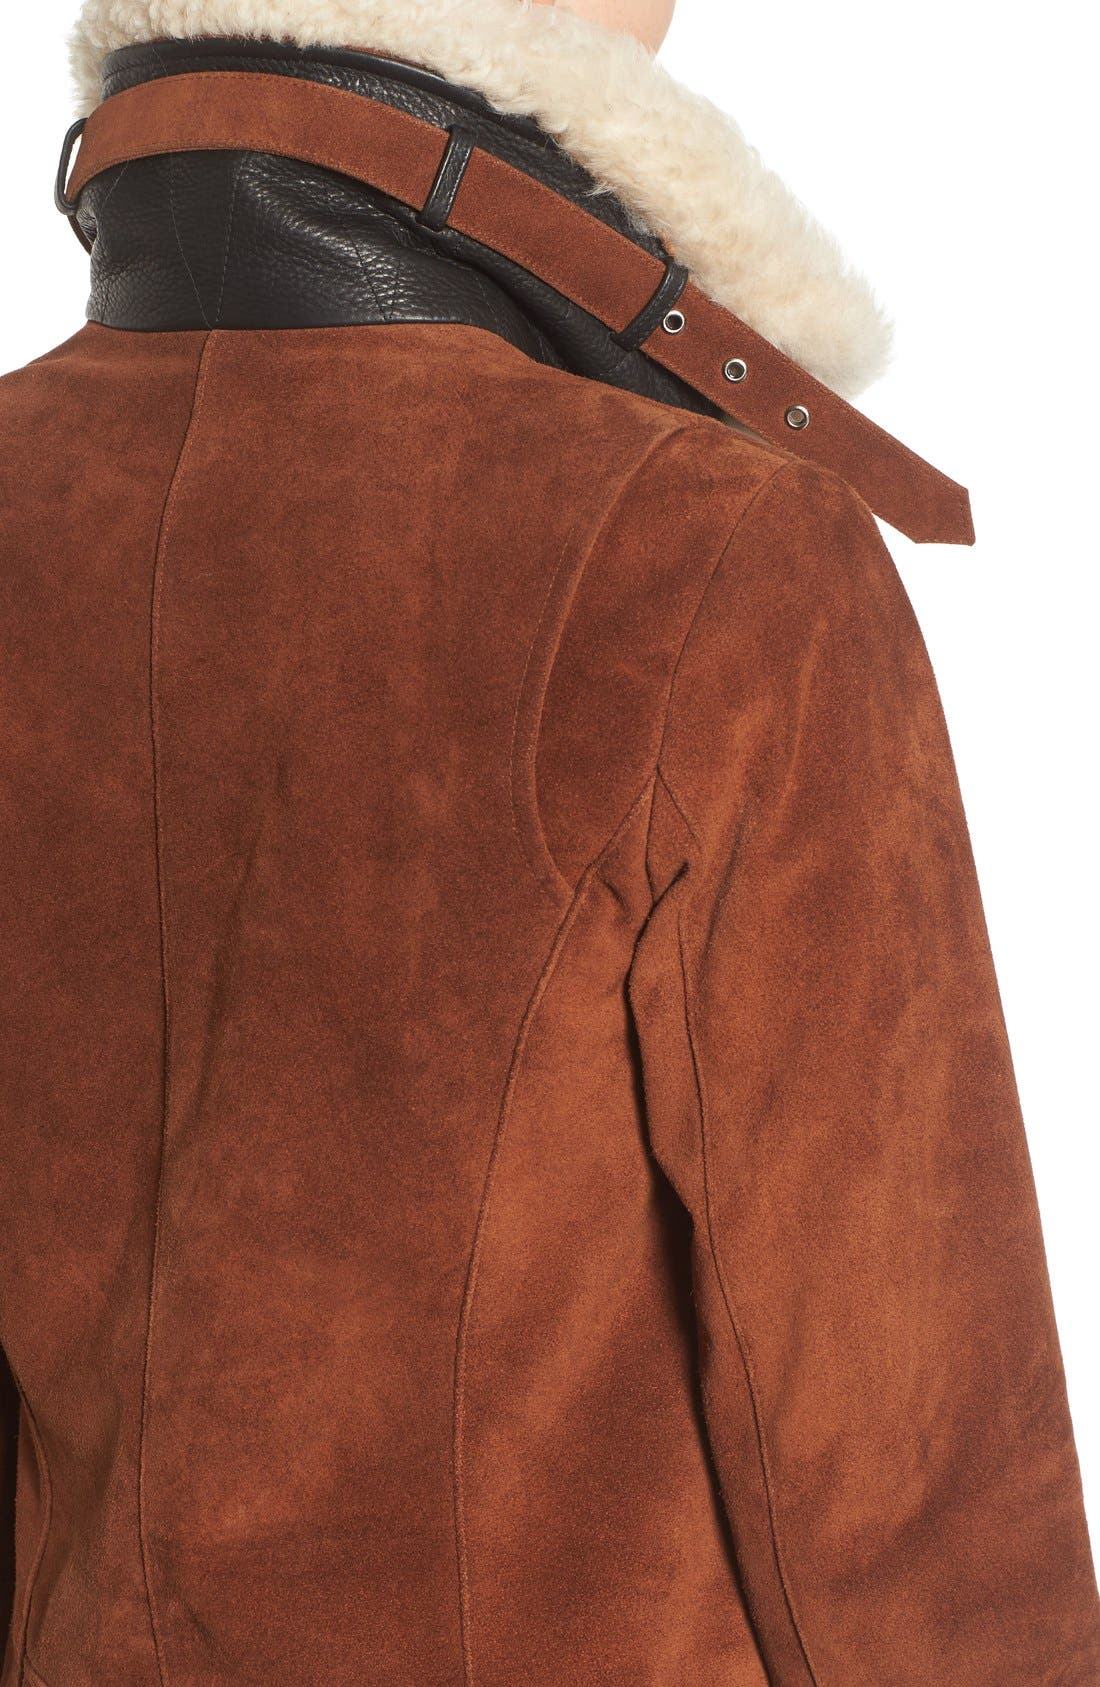 Alternate Image 4  - Andrew Marc Suede Jacket with Genuine Shearling Collar